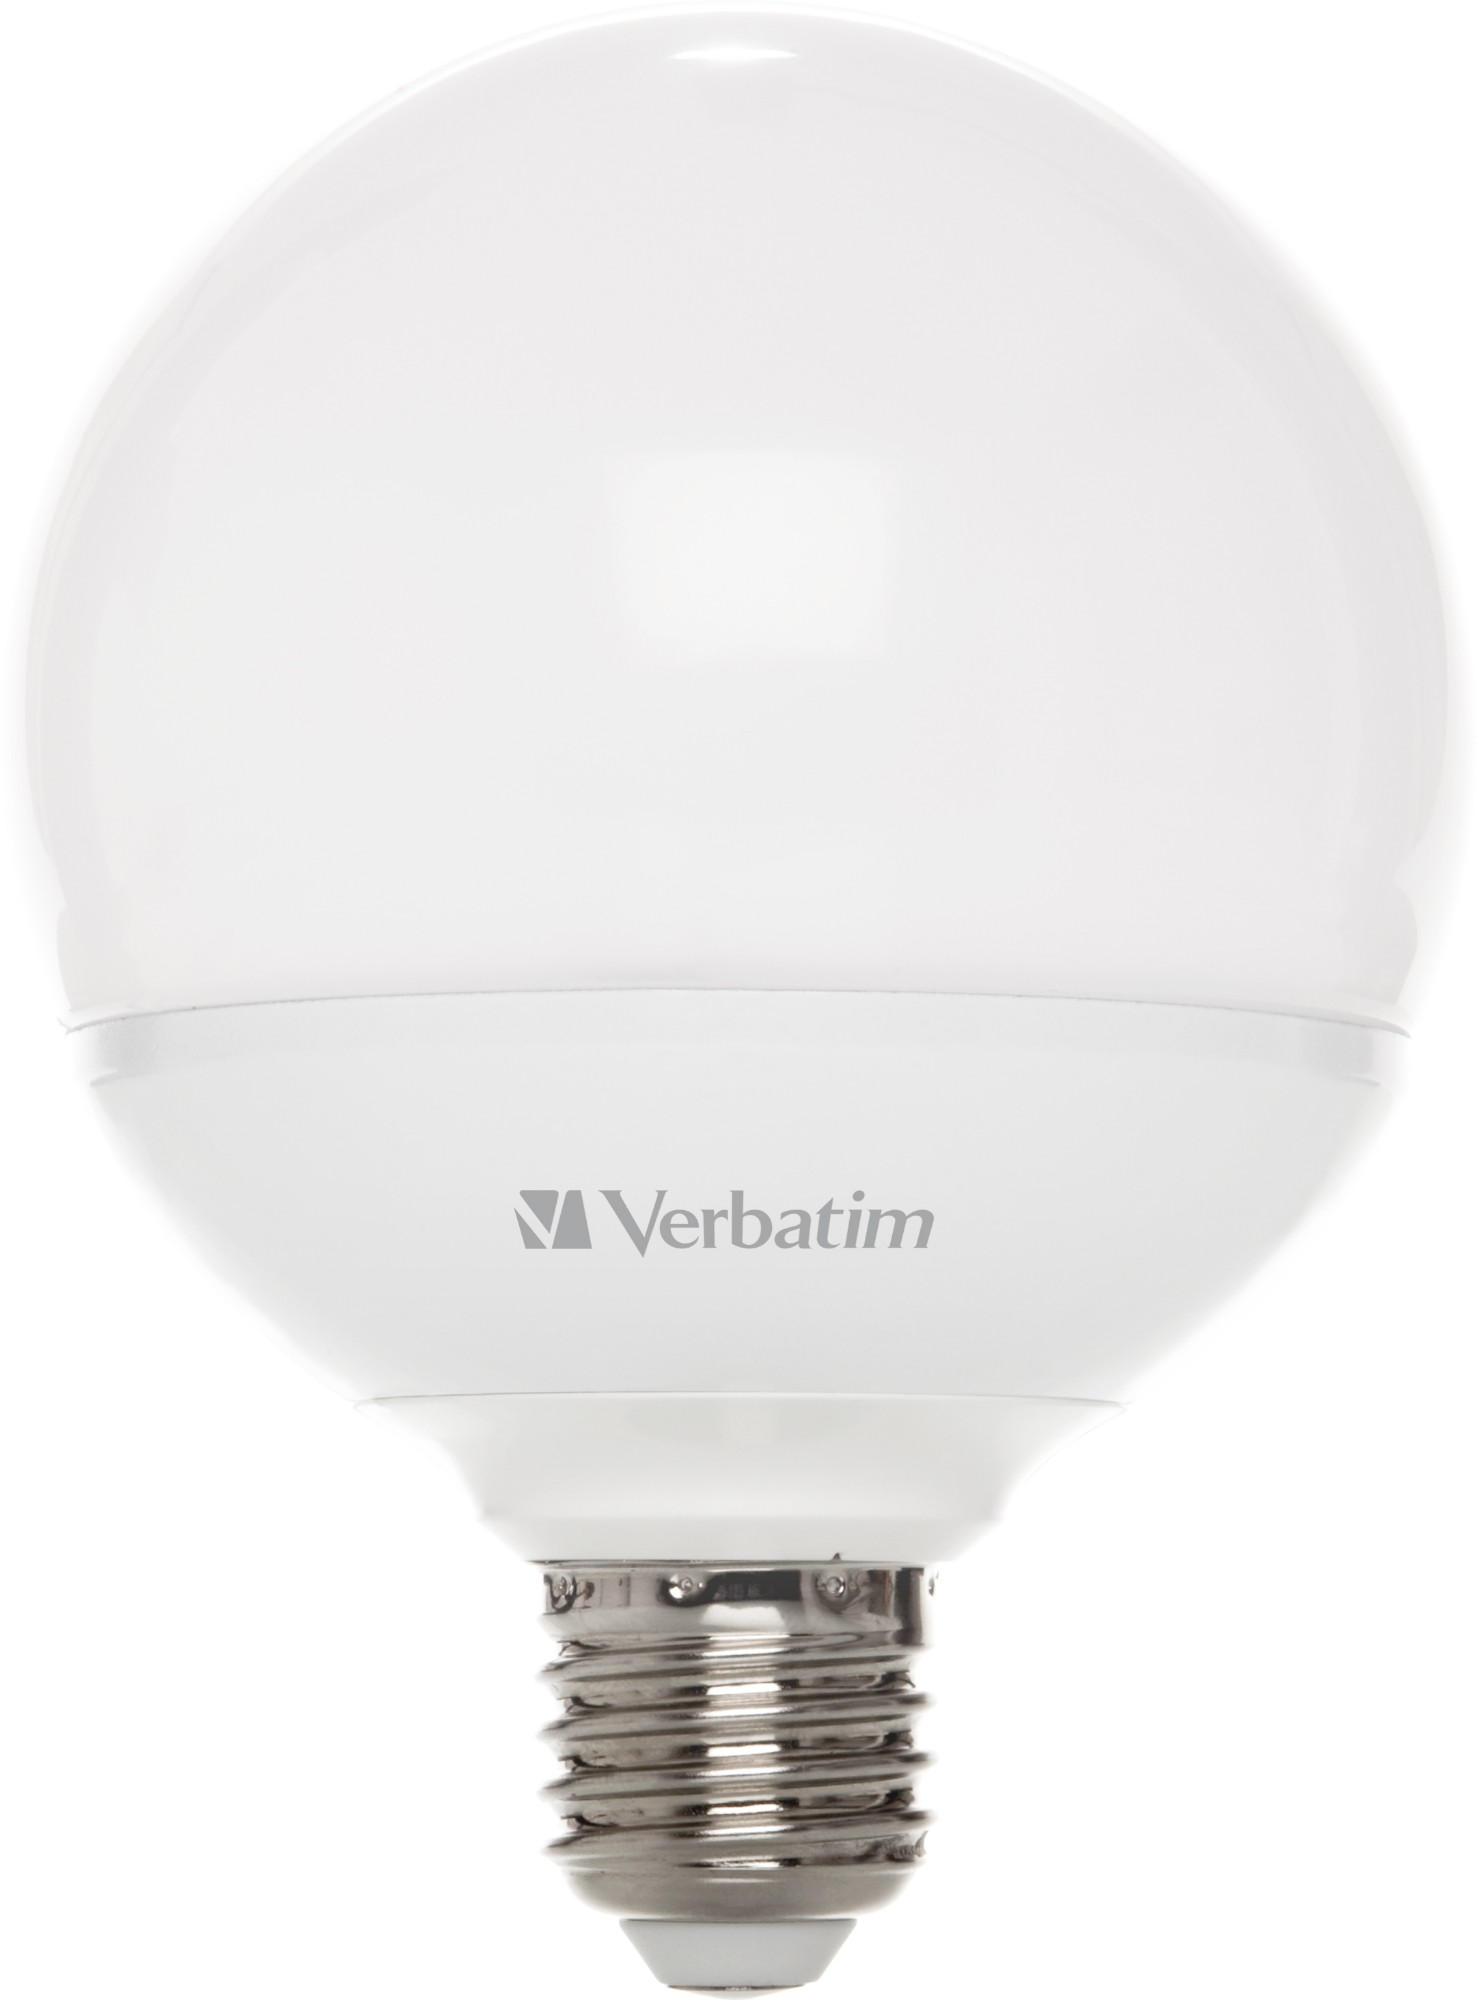 Verbatim Globe 7W E27 A+ Warm white LED bulb